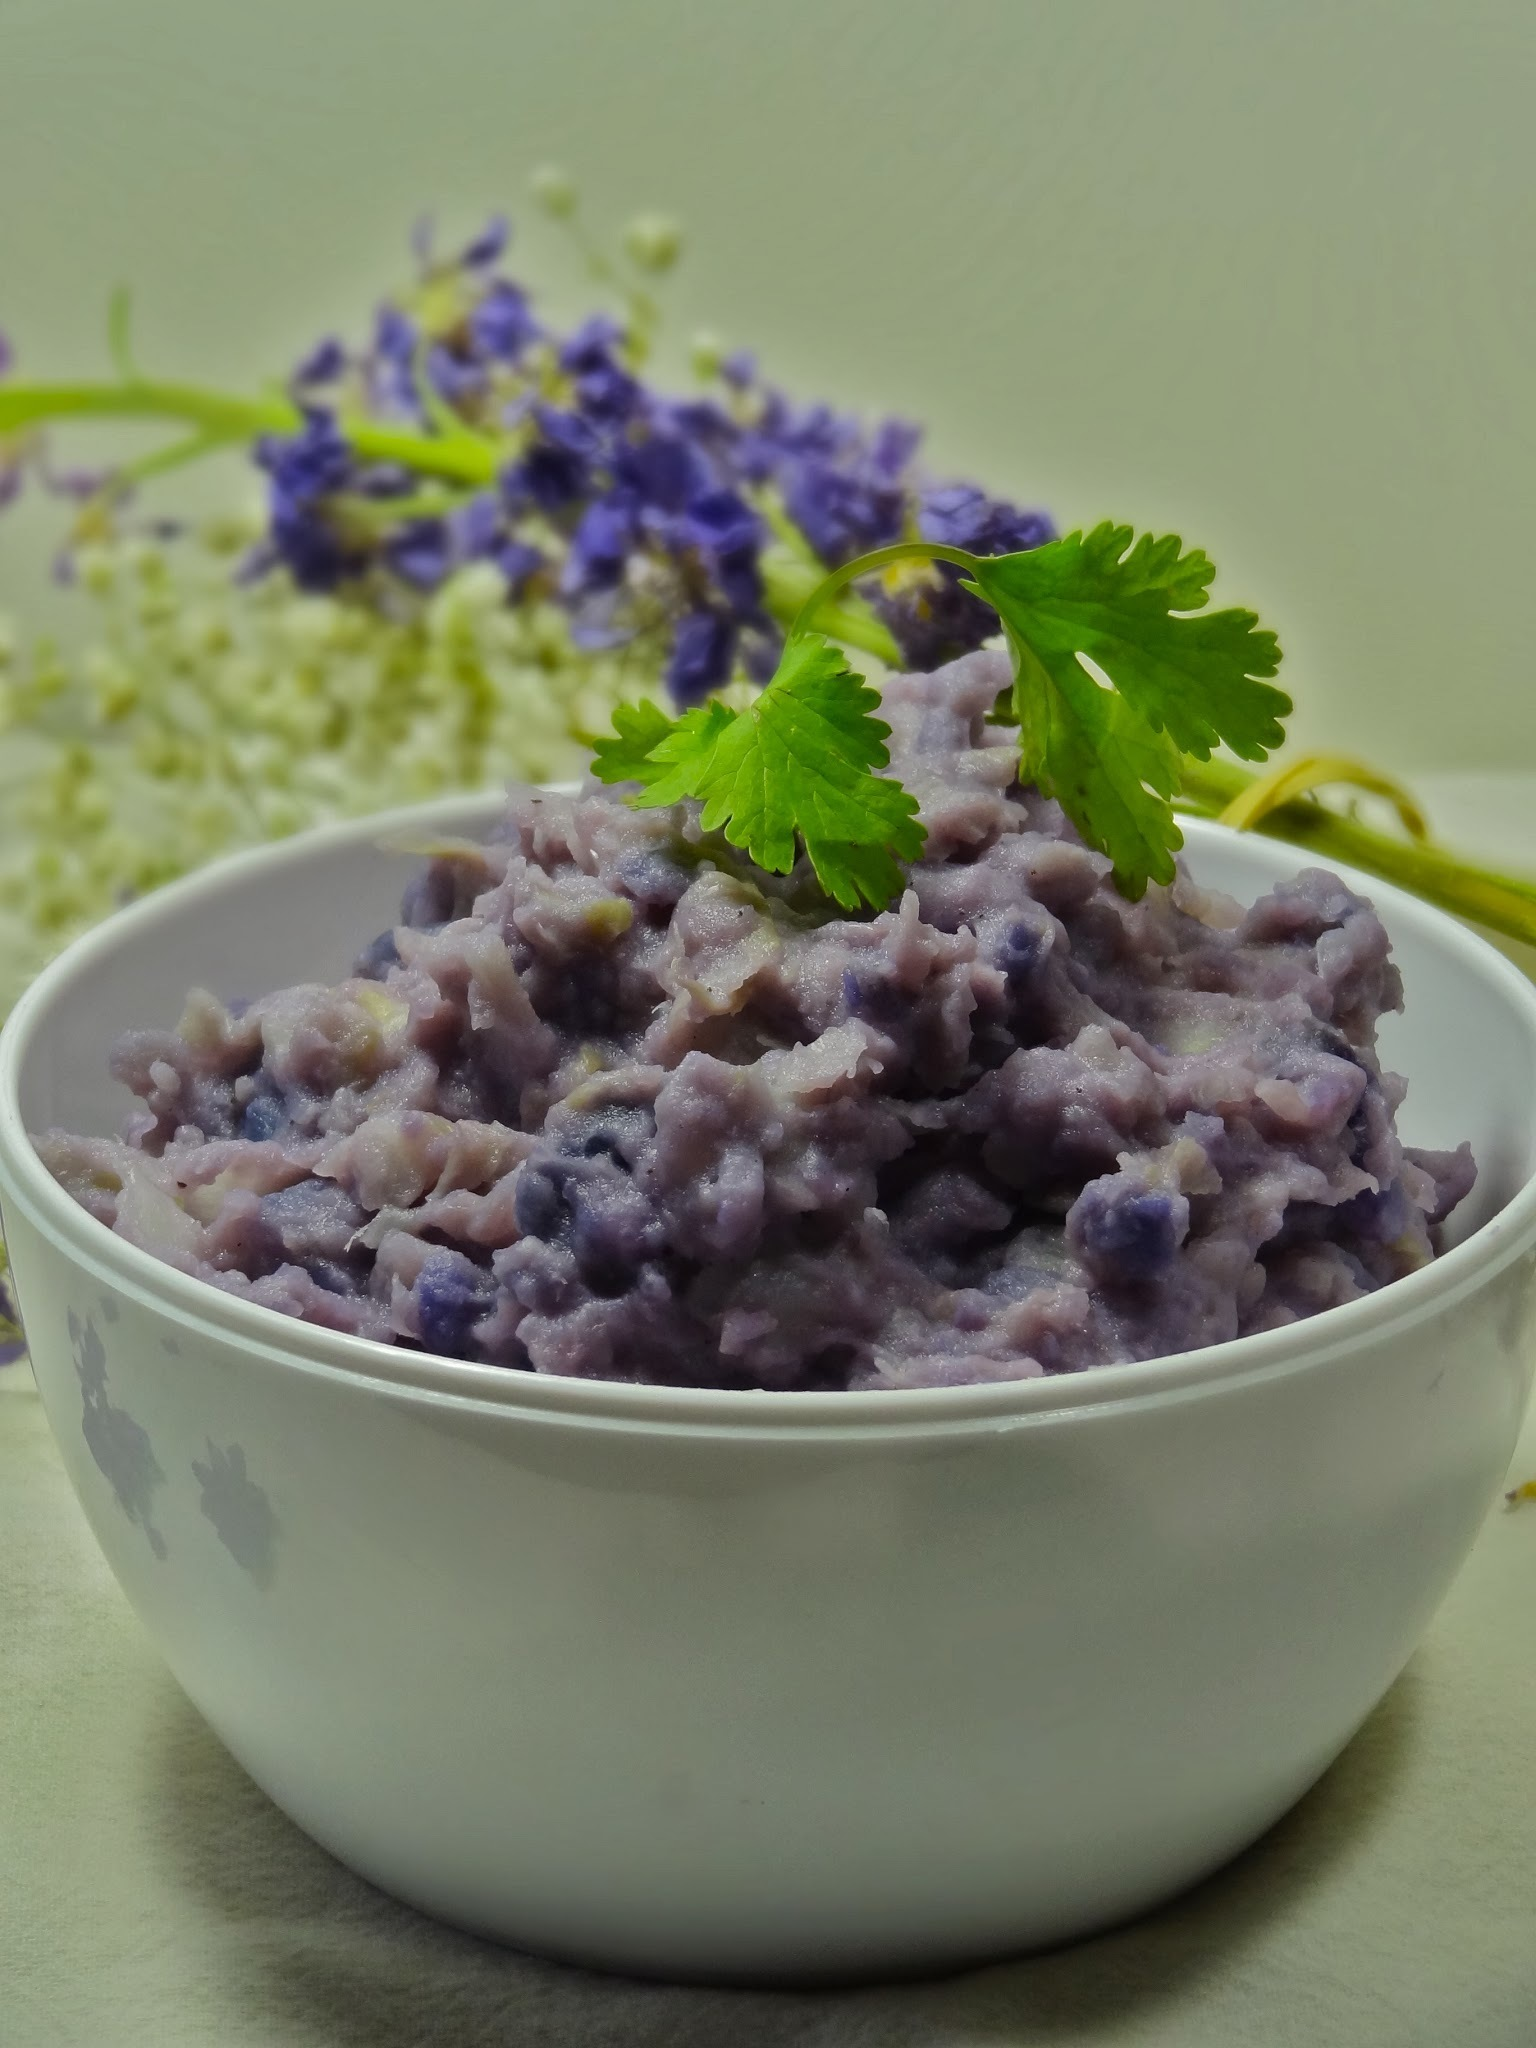 Mashed purple potato with cabbage